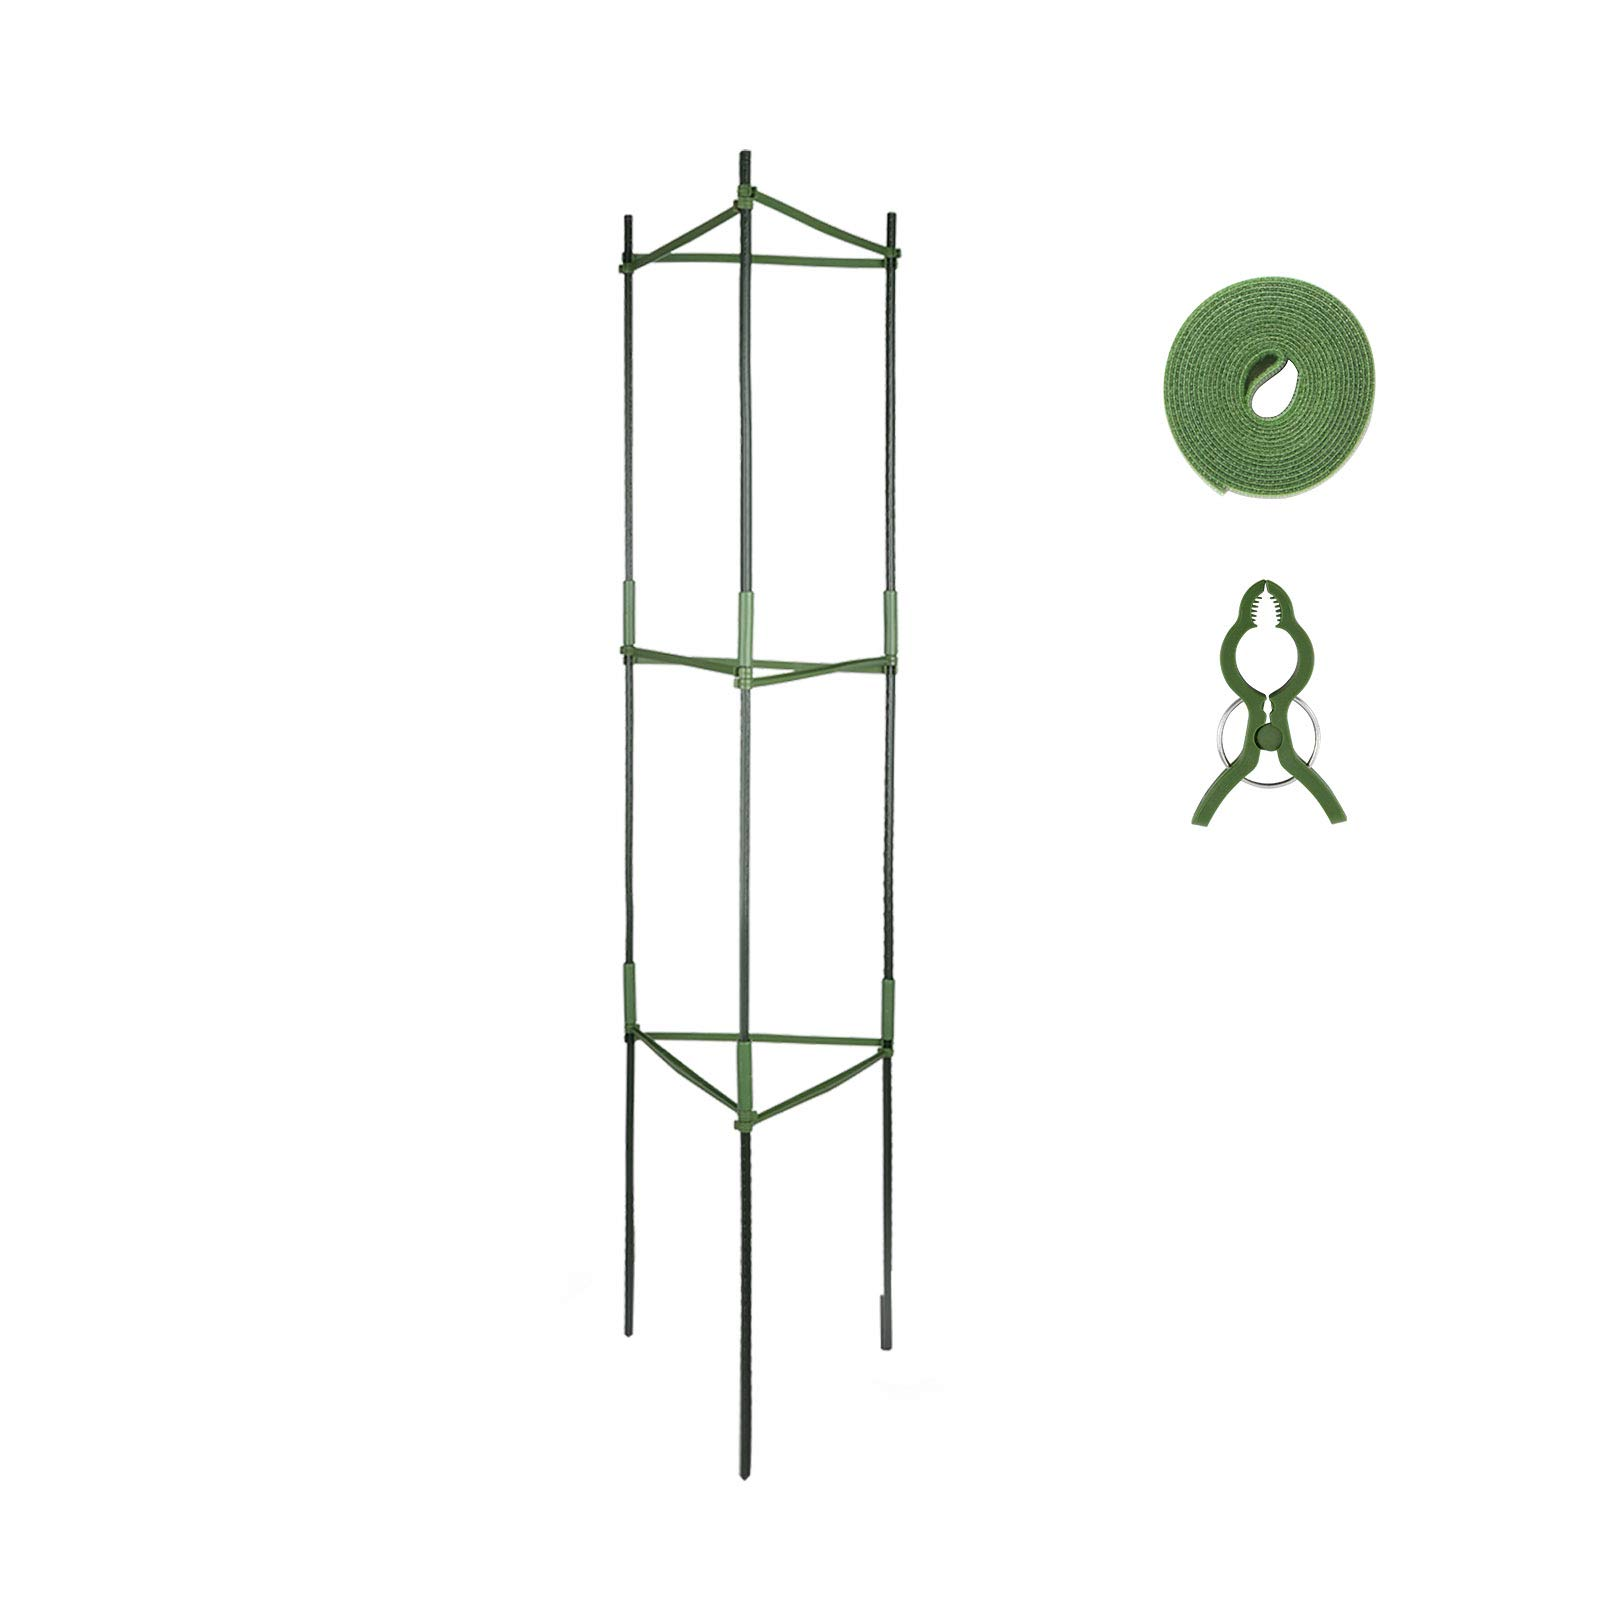 GROWNEER Plant Cages Assembled Tomato Garden Cages Stakes Vegetable Trellis, with 3Pcs Clips and 78 Inches Garden Ties, for Vertical Climbing Plants